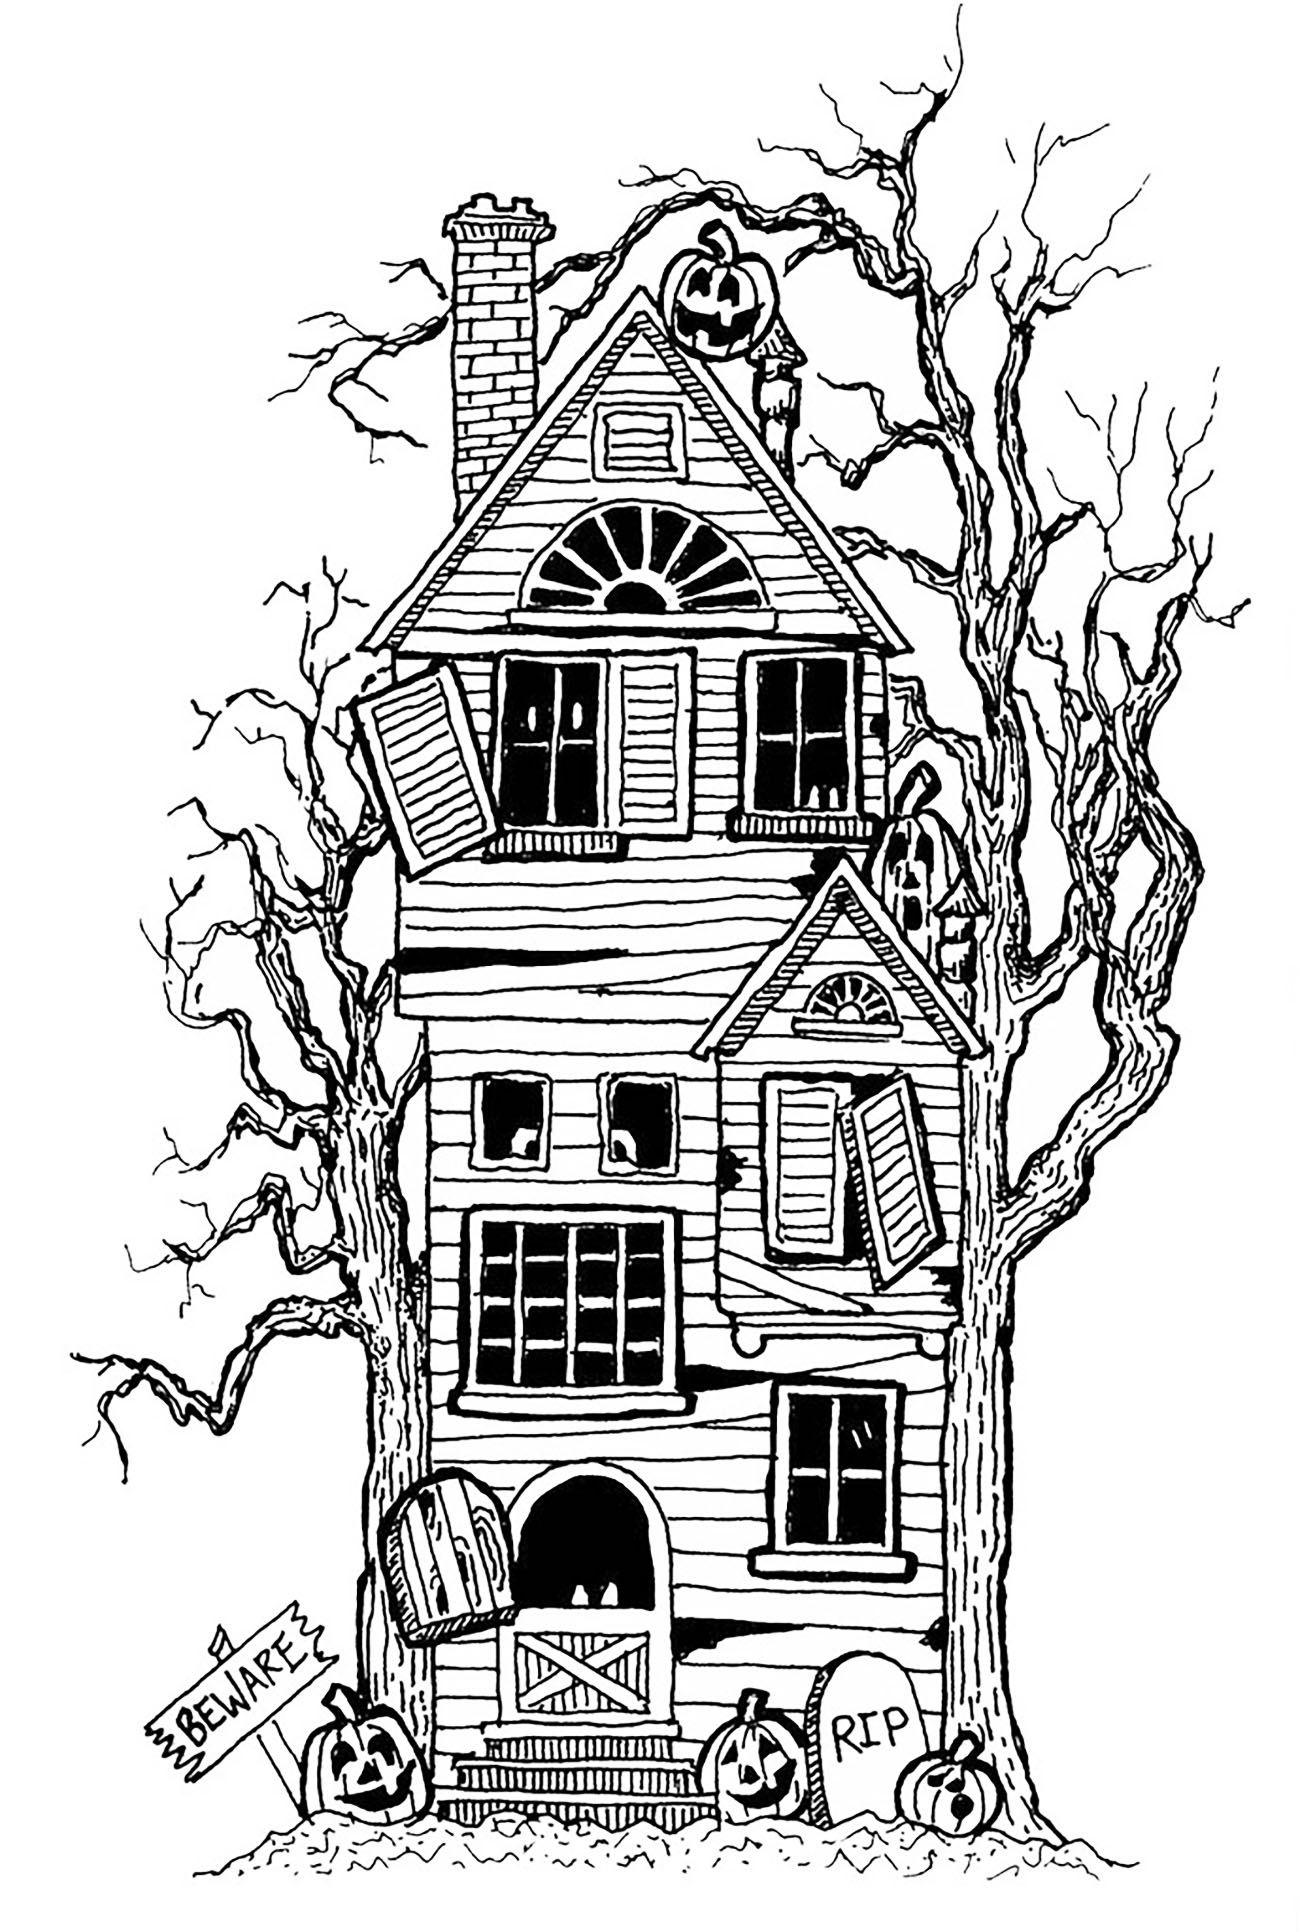 coloring halloween doodle pages halloween scary pumpkin halloween adult coloring pages coloring pages doodle halloween